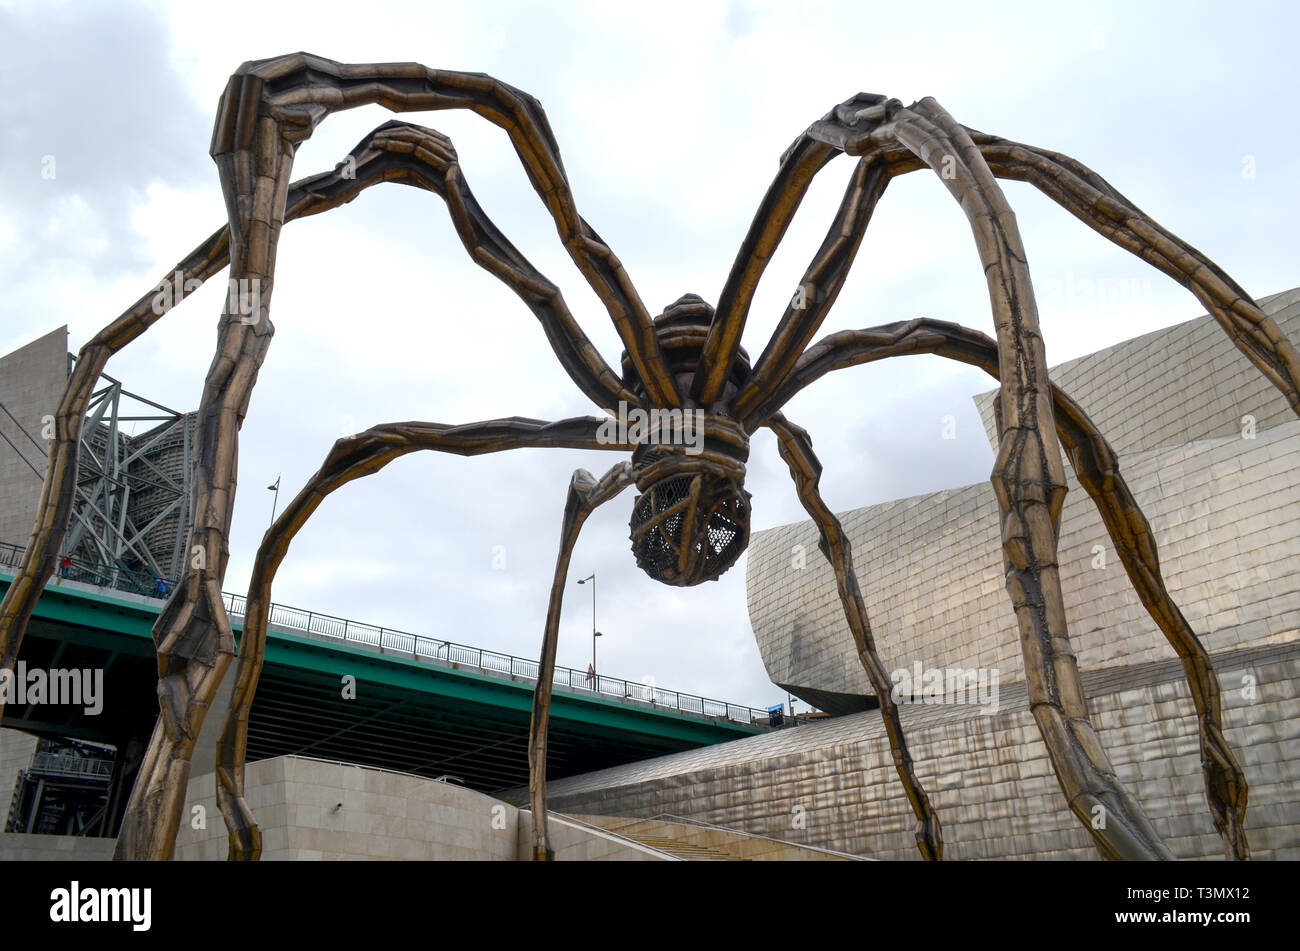 bilbao city on spain pictured in  dec.12.2015 - Stock Image